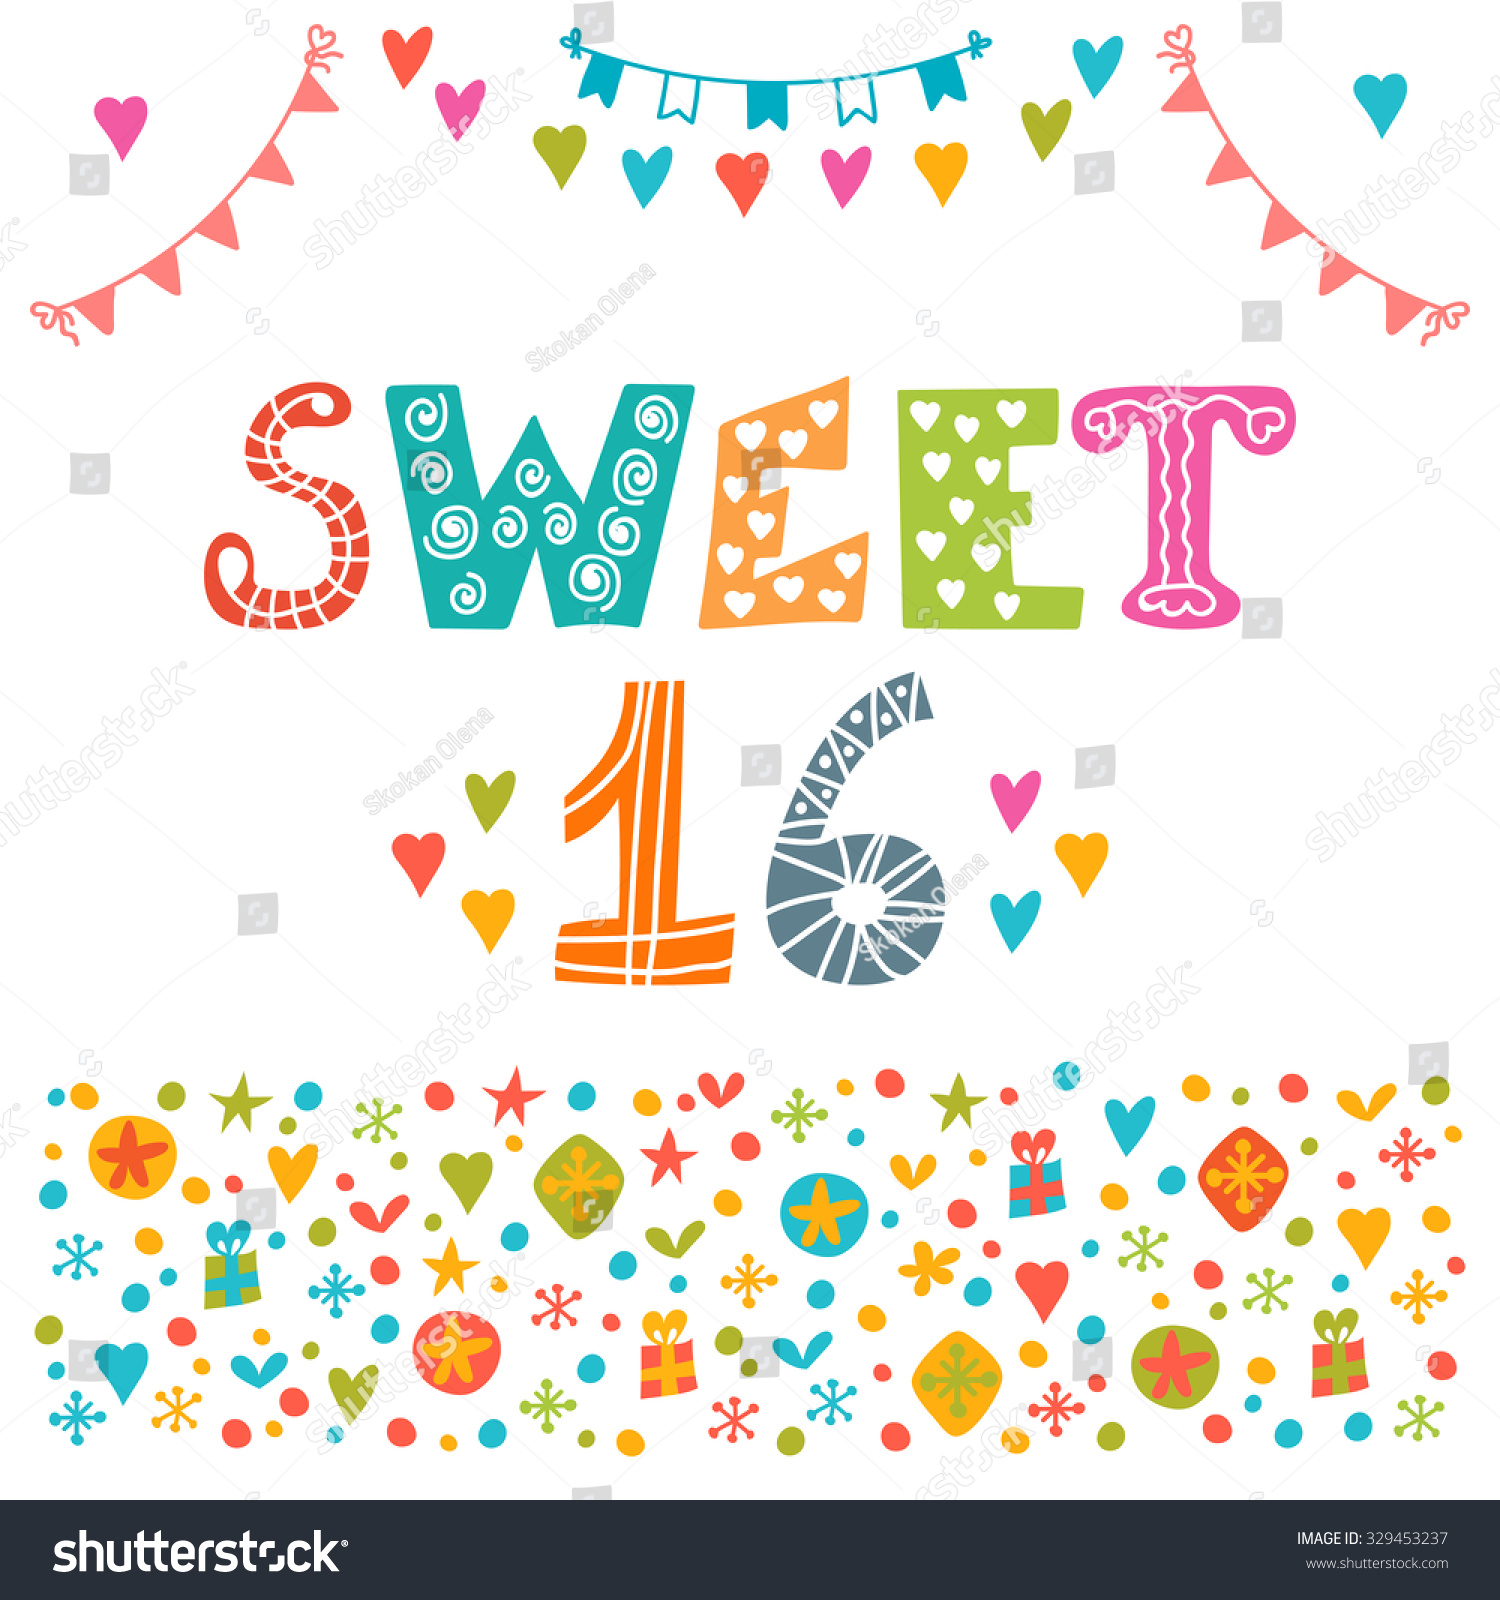 sweet sixteen invitation flyer template design stock vector invitation flyer template design cute hand drawn postcard vector illustration